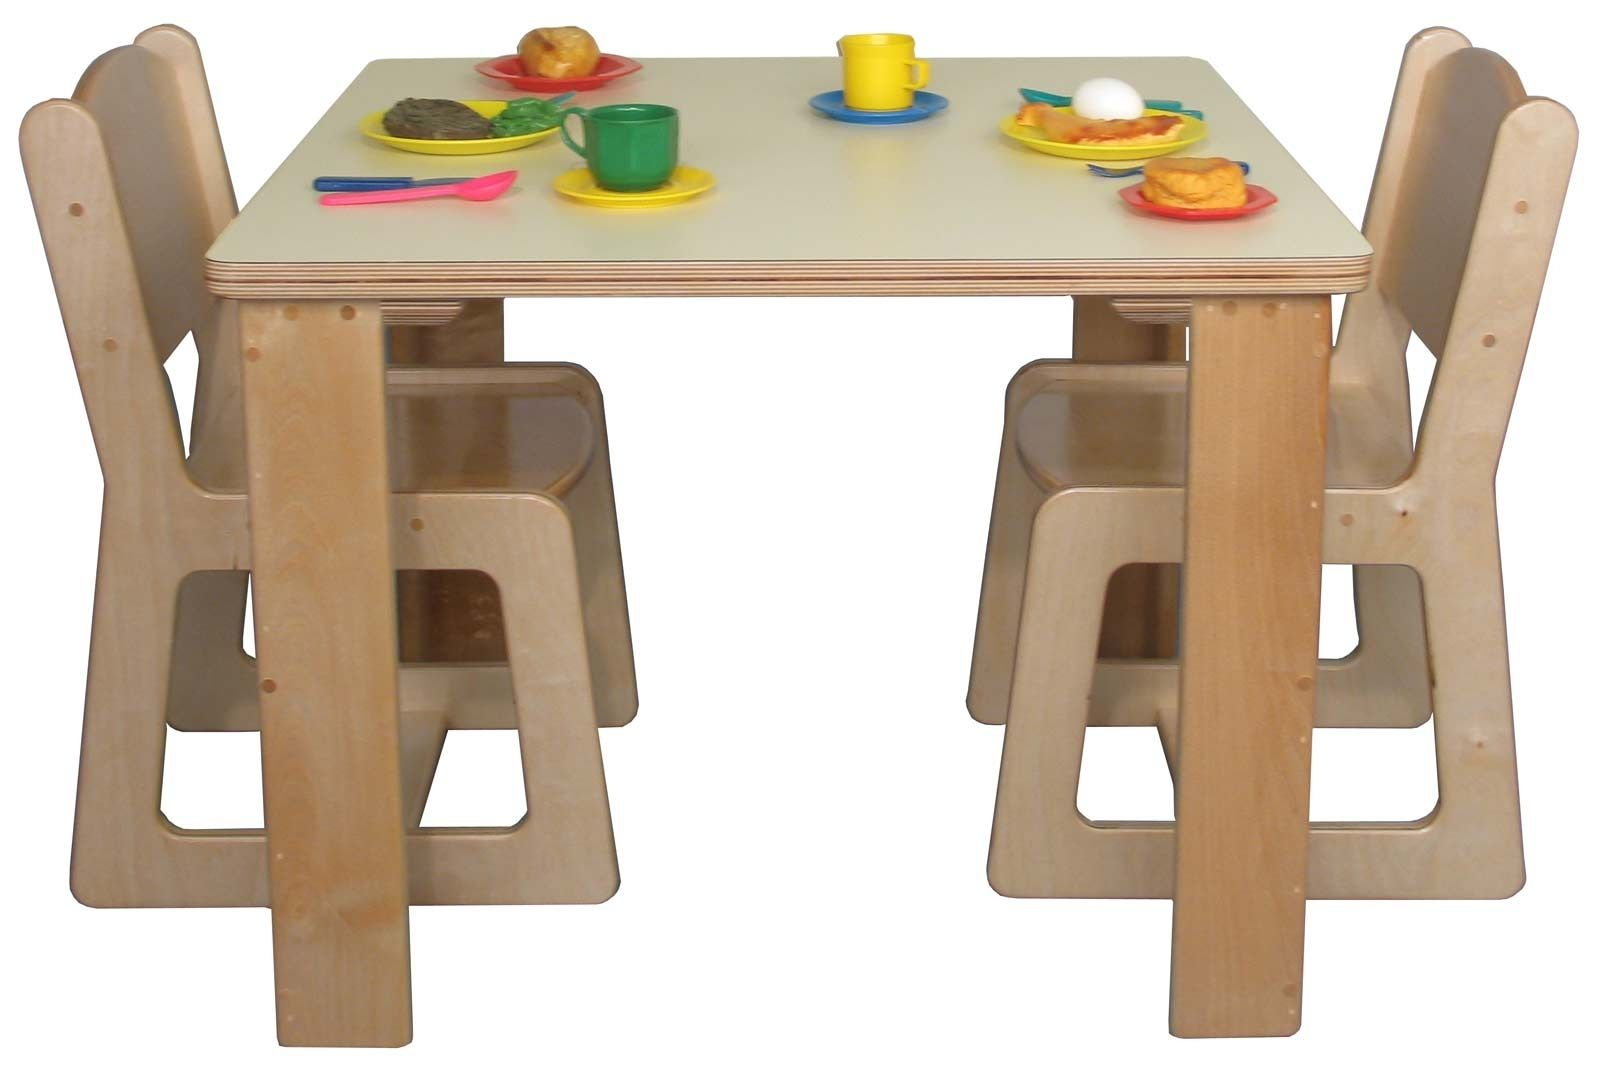 Baby Plastic Table And Chairs Set | http://lachpage.com | Pinterest ...